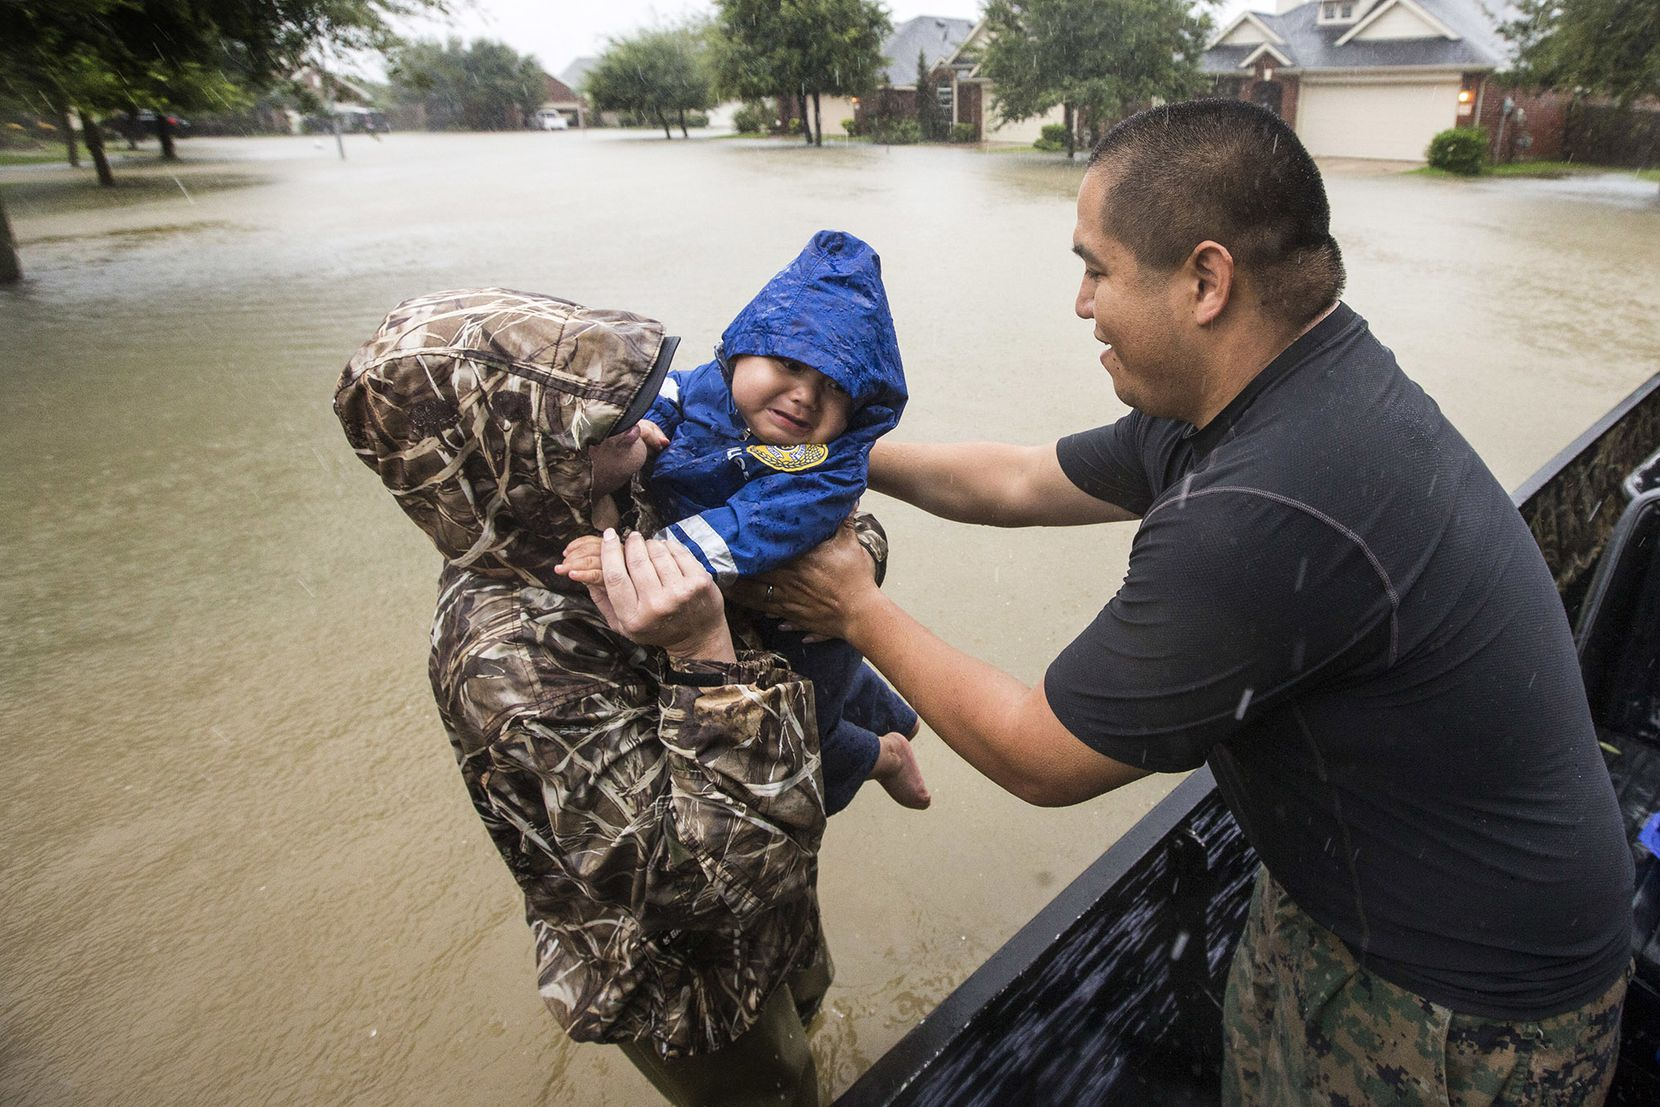 Wilfredo Linares reaches out for his baby, Mason, as they are evacuated from Grand Mission subdivision, as the water rises from heavy rains from Tropical Storm Harvey on Monday, Aug. 28, 2017, in Fort Bend County, Texas. (Brett Coomer/Houston Chronicle via AP)